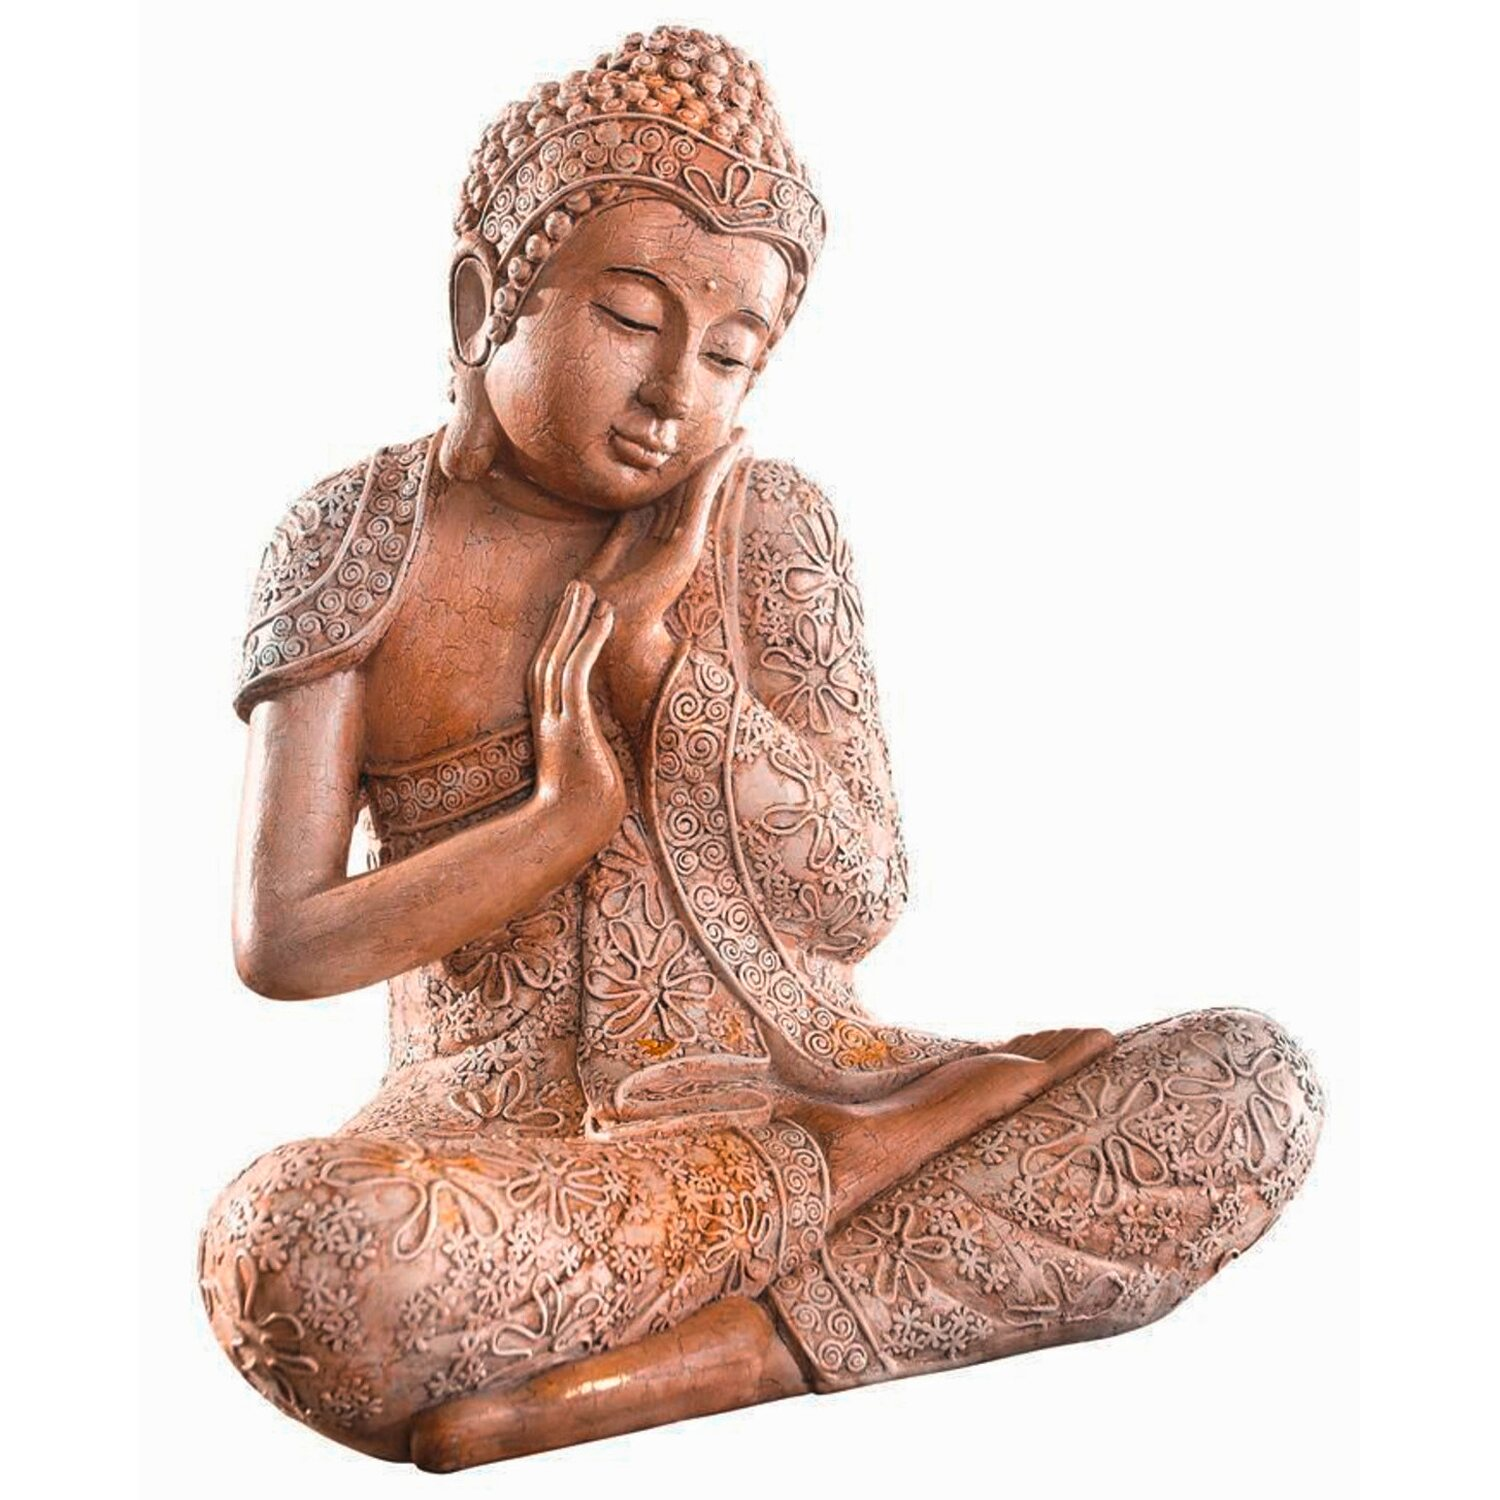 Best of home dekofigur buddha 35 cm x 28 cm x 20 cm kaufen for Best moebel24